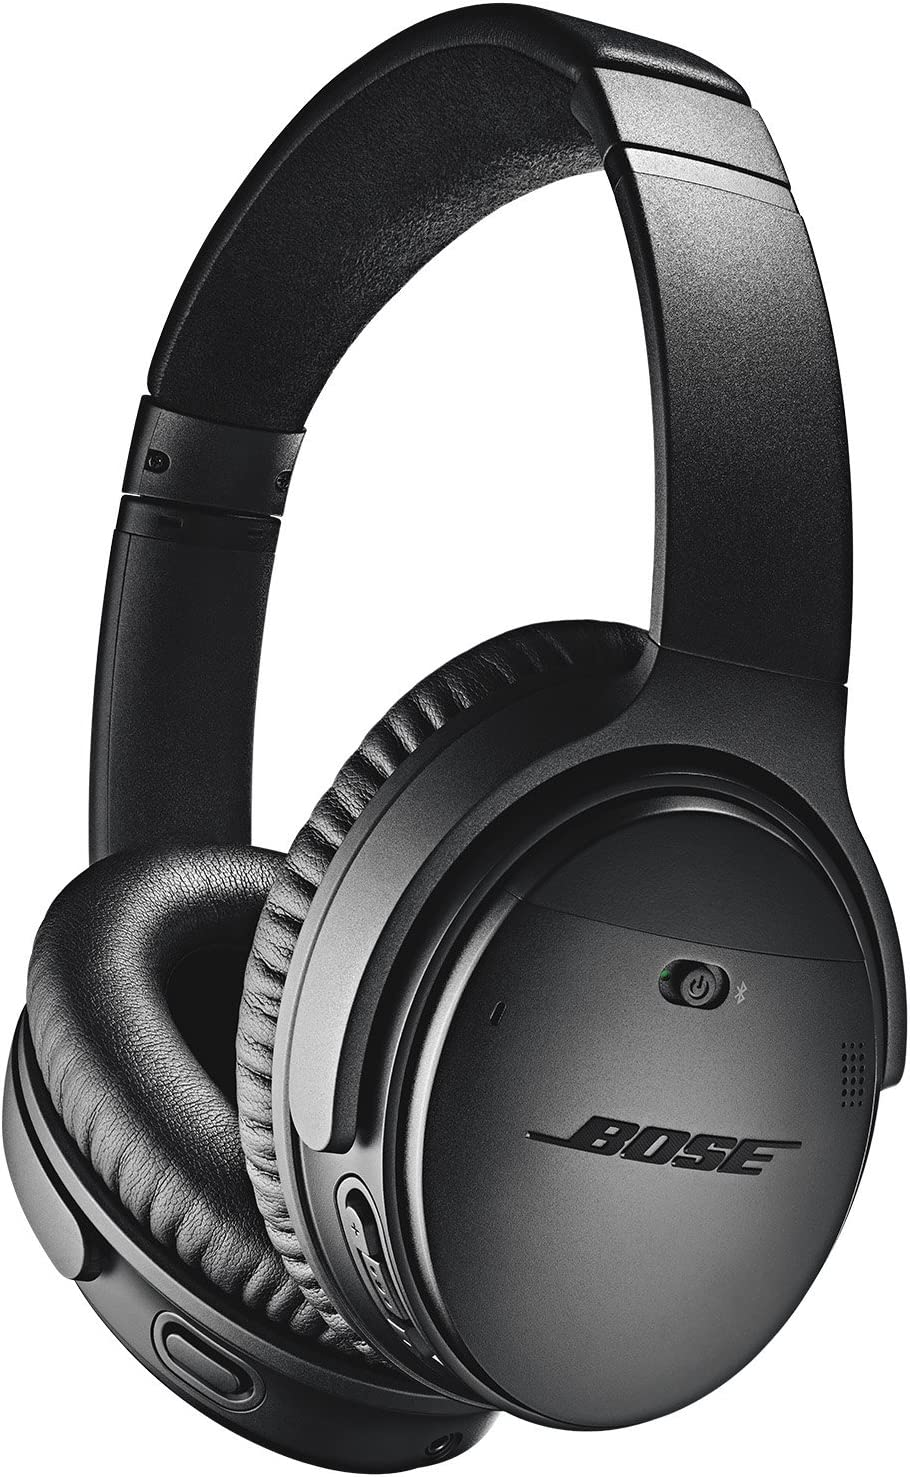 The Bose QuietComfort 35 II Wireless Bluetooth Headphones travel product recommended by Lauren McManus on Lifney.